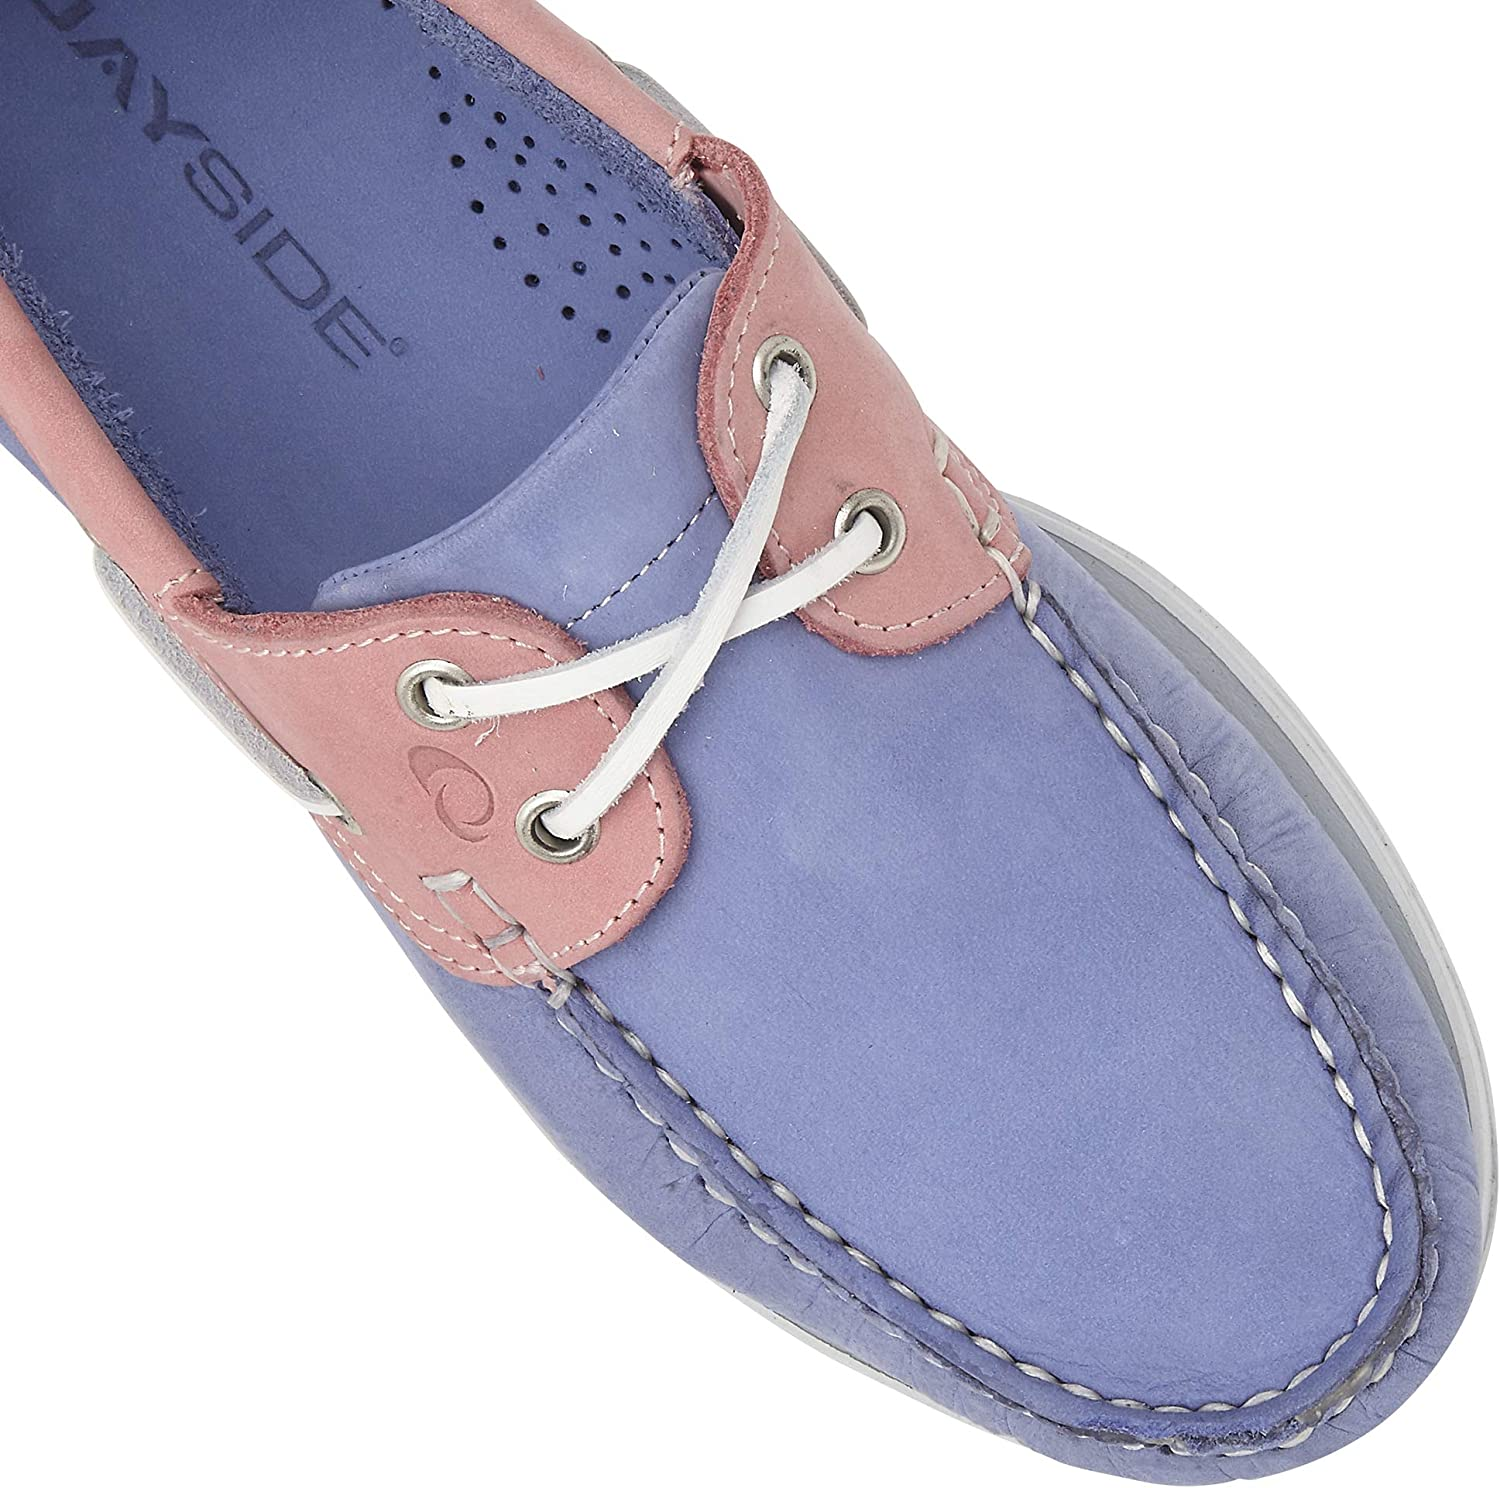 Chaussures Bateau Mixte Adulte Quayside Bermuda Cayman